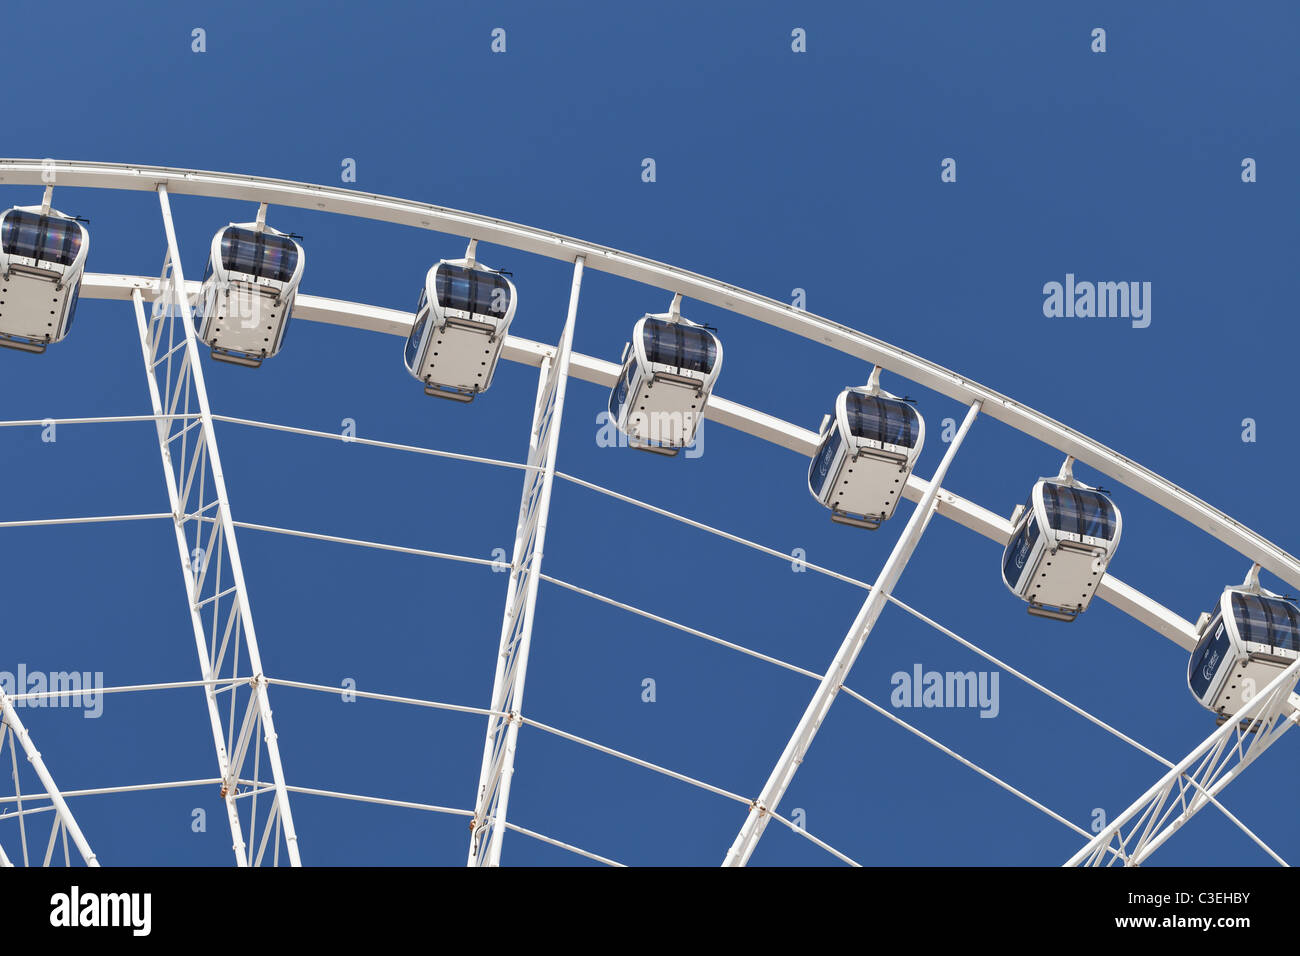 The Manchester Wheel, Manchester, England - Stock Image